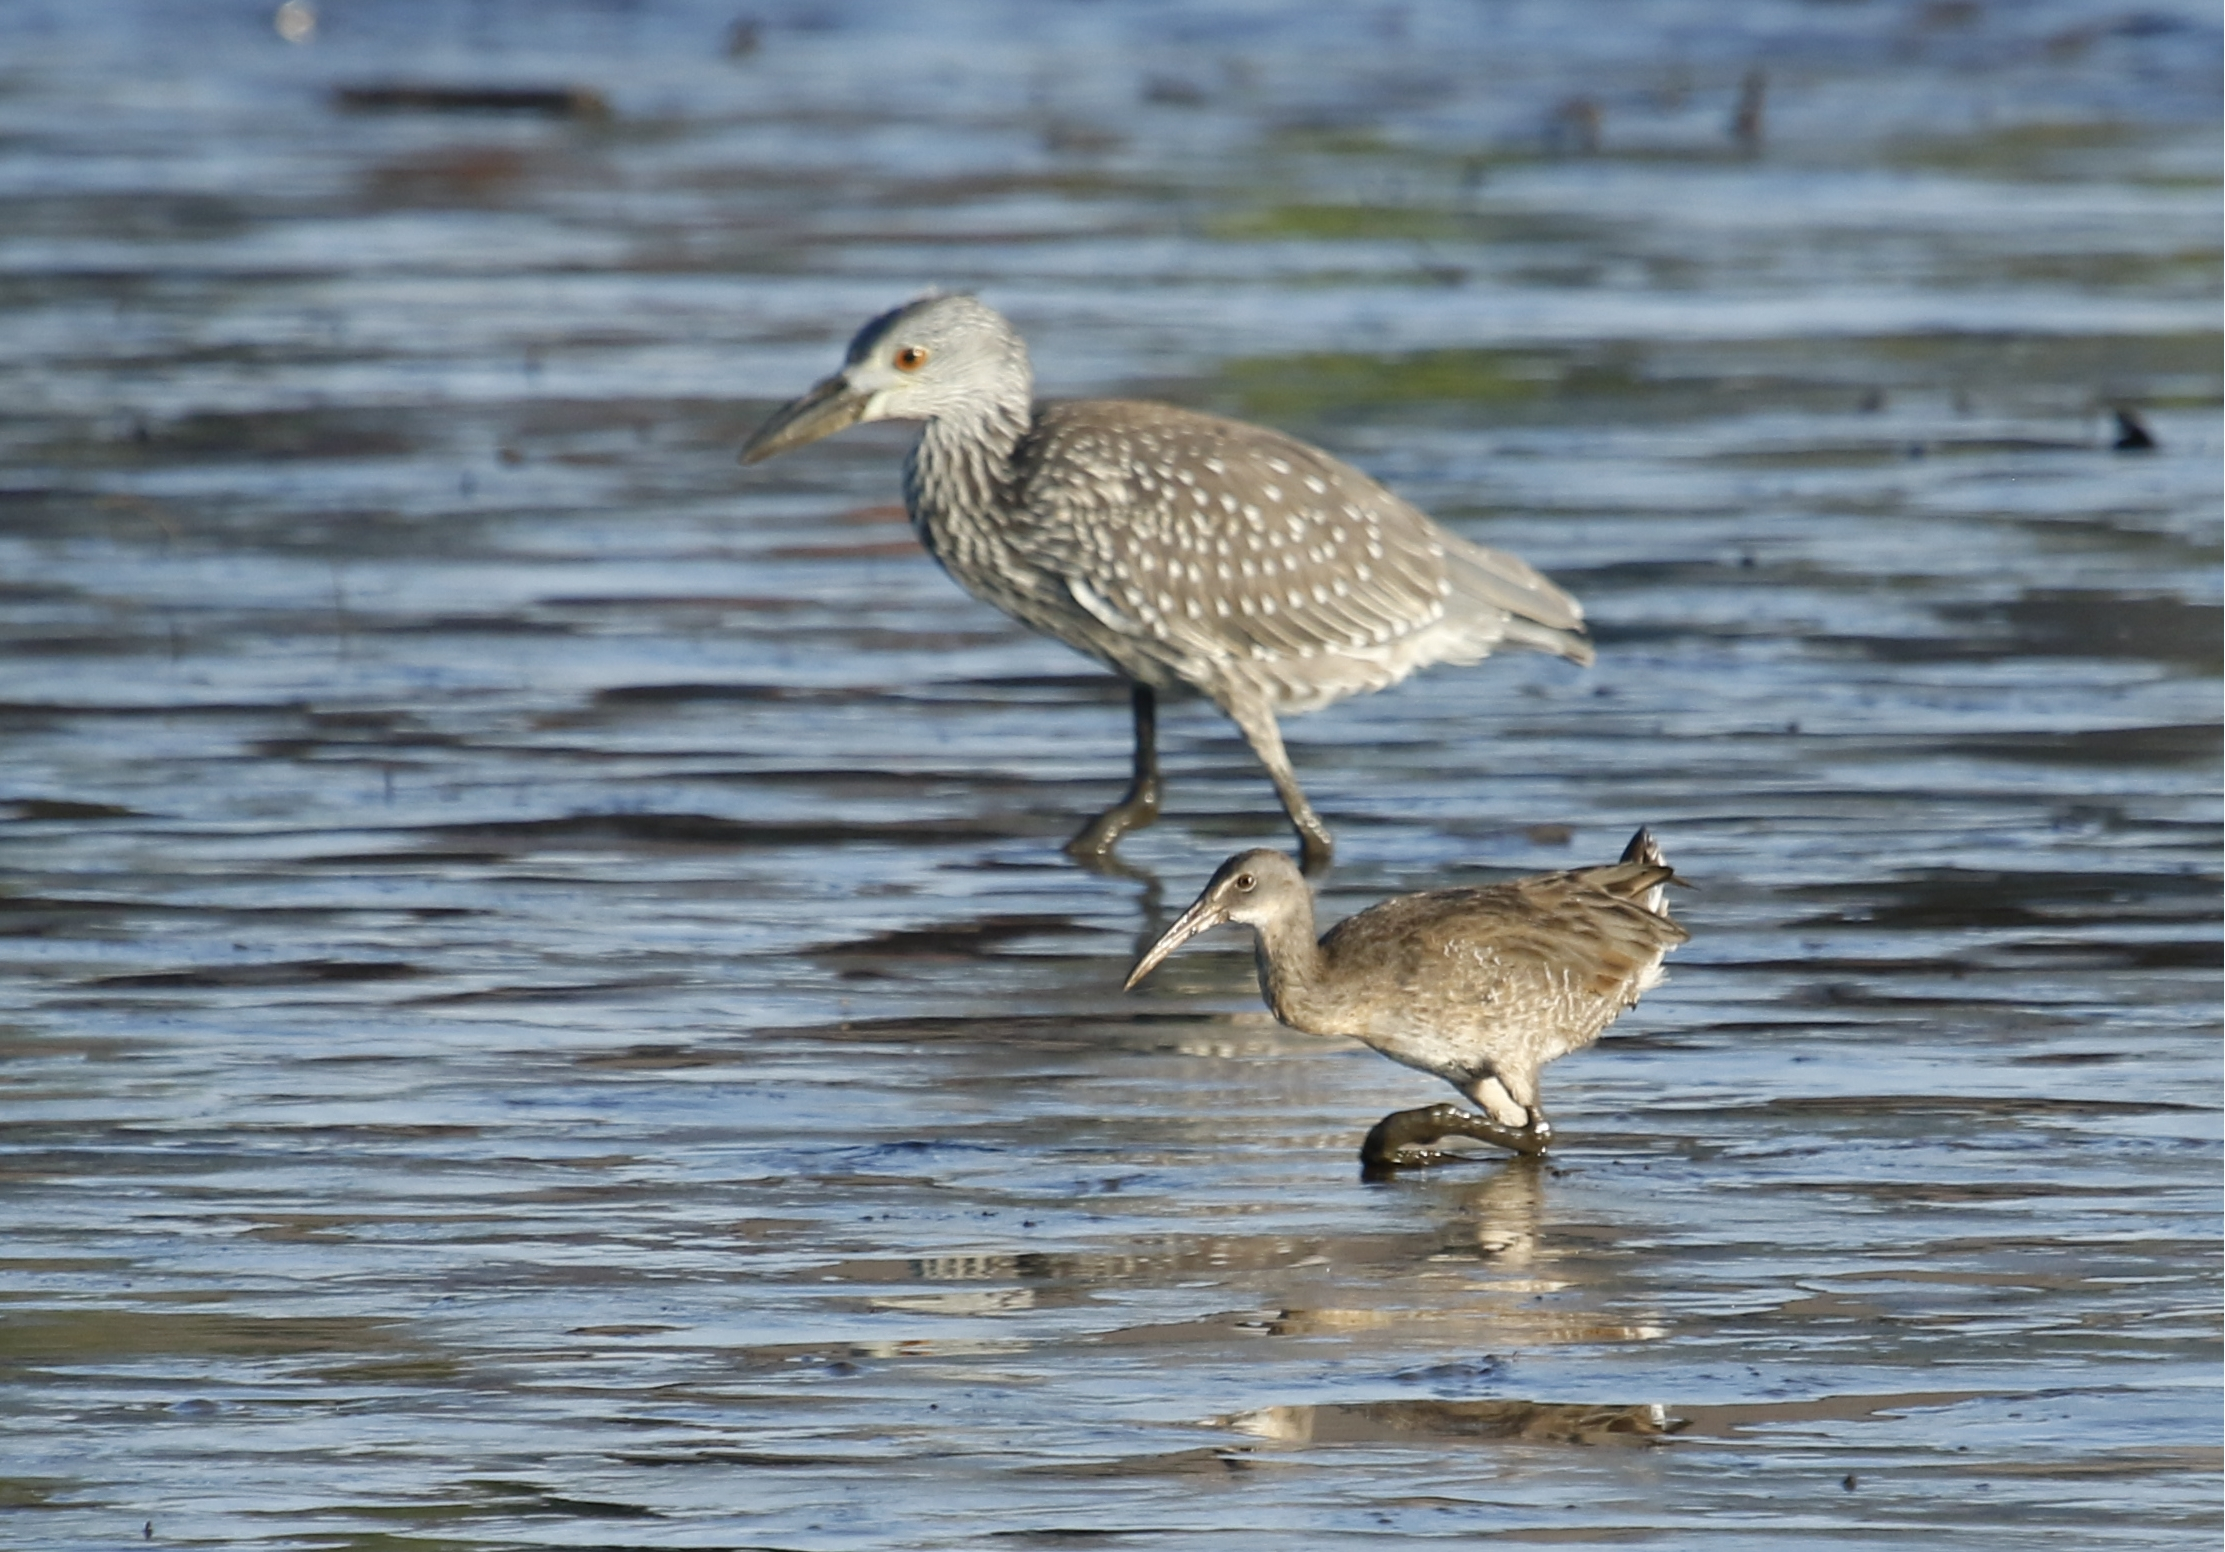 It is another Muddy Monday morning on the Broward as these young birds hunt for food seemingly unaware of the dangers above.